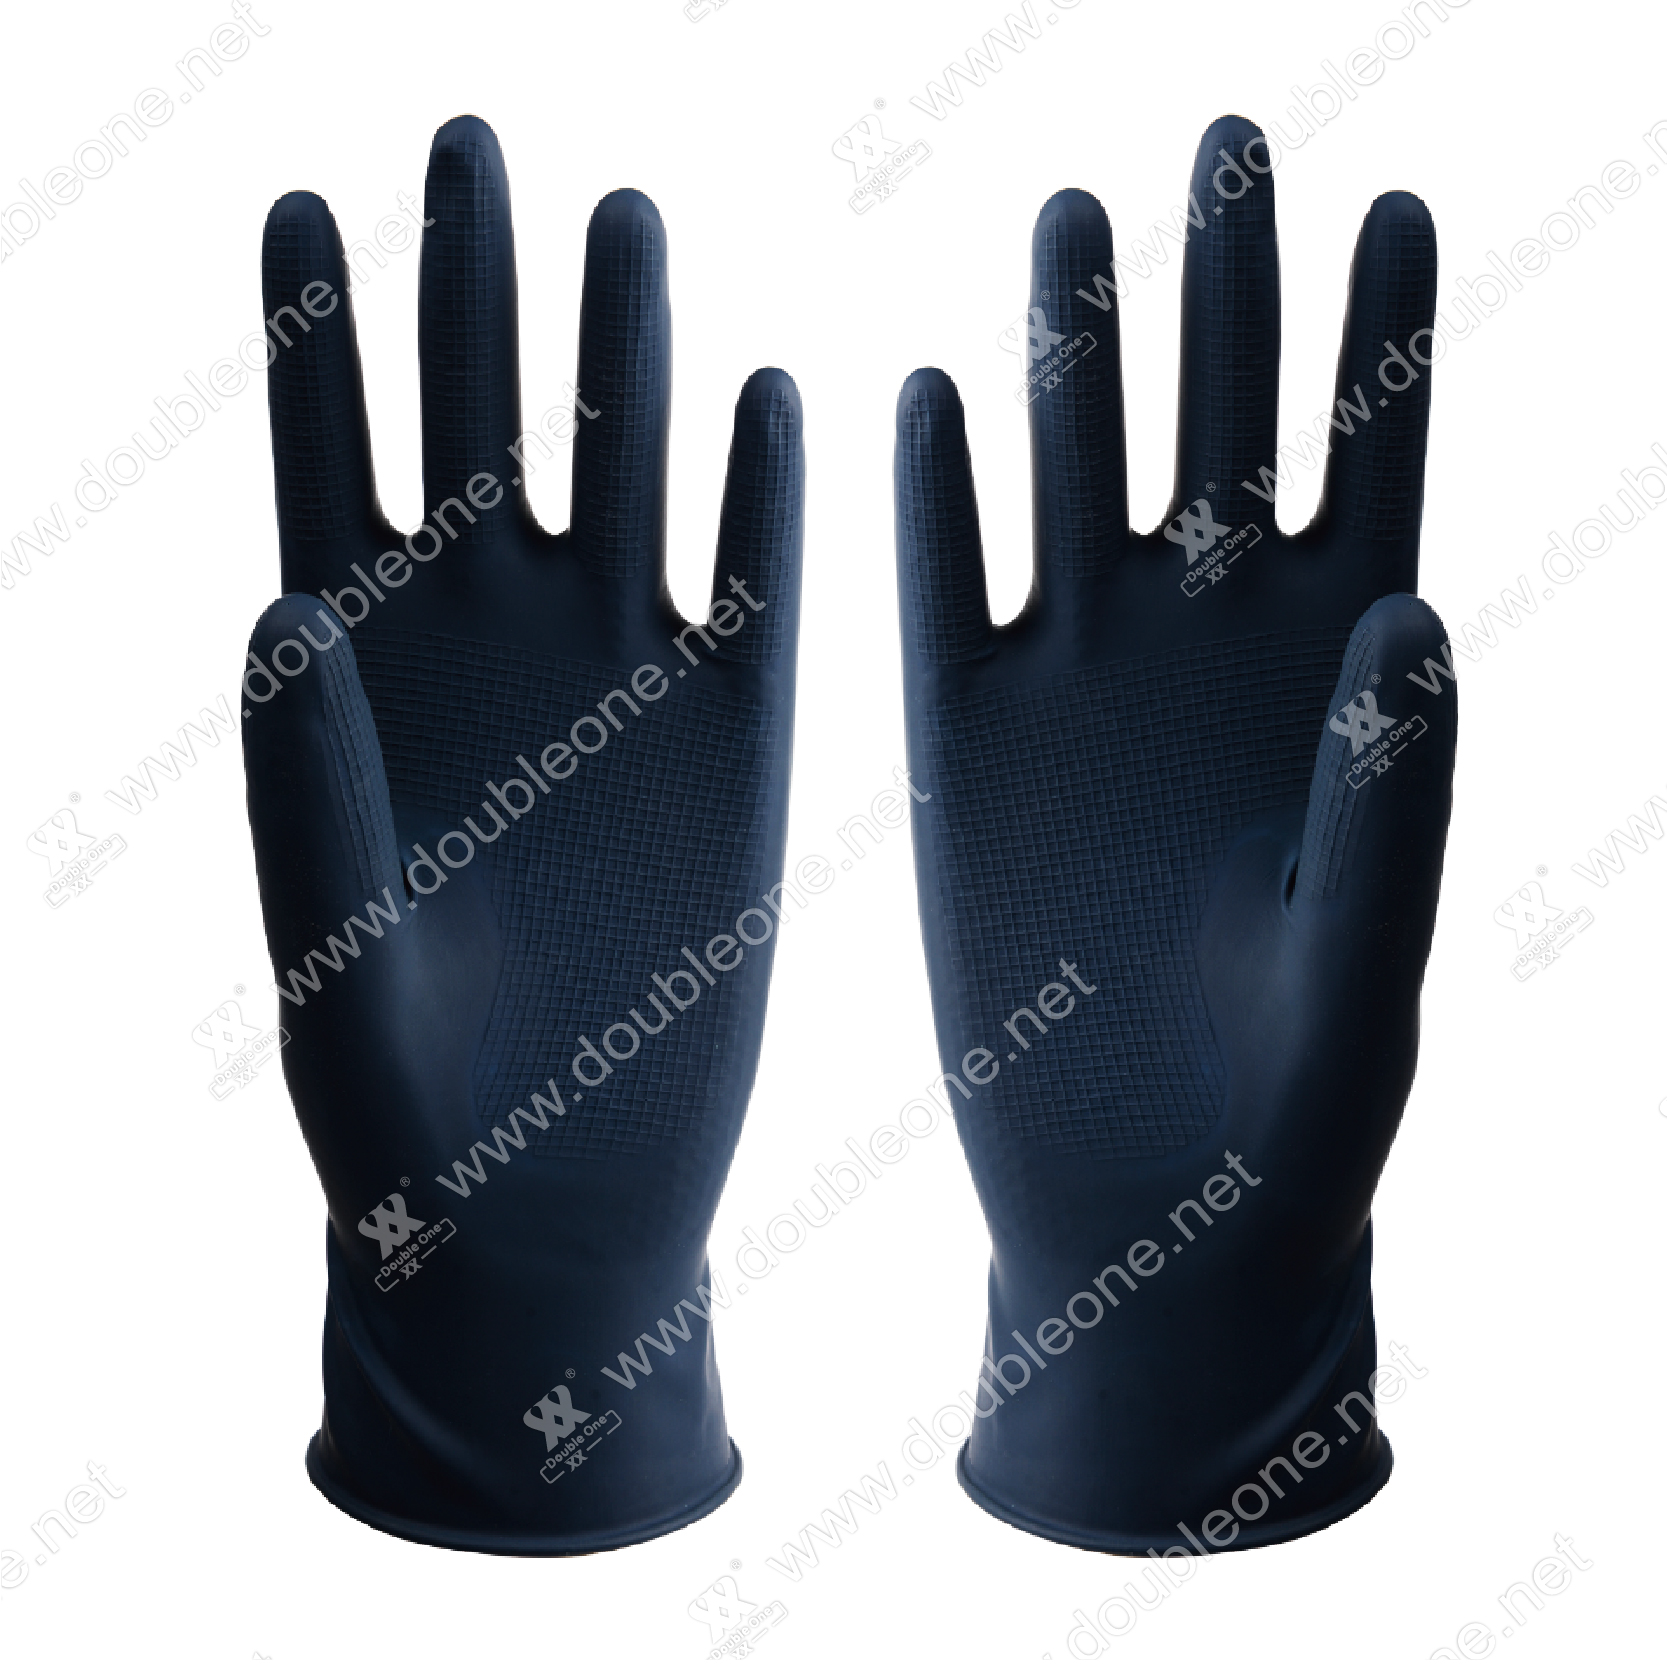 LIghtweight household gloves